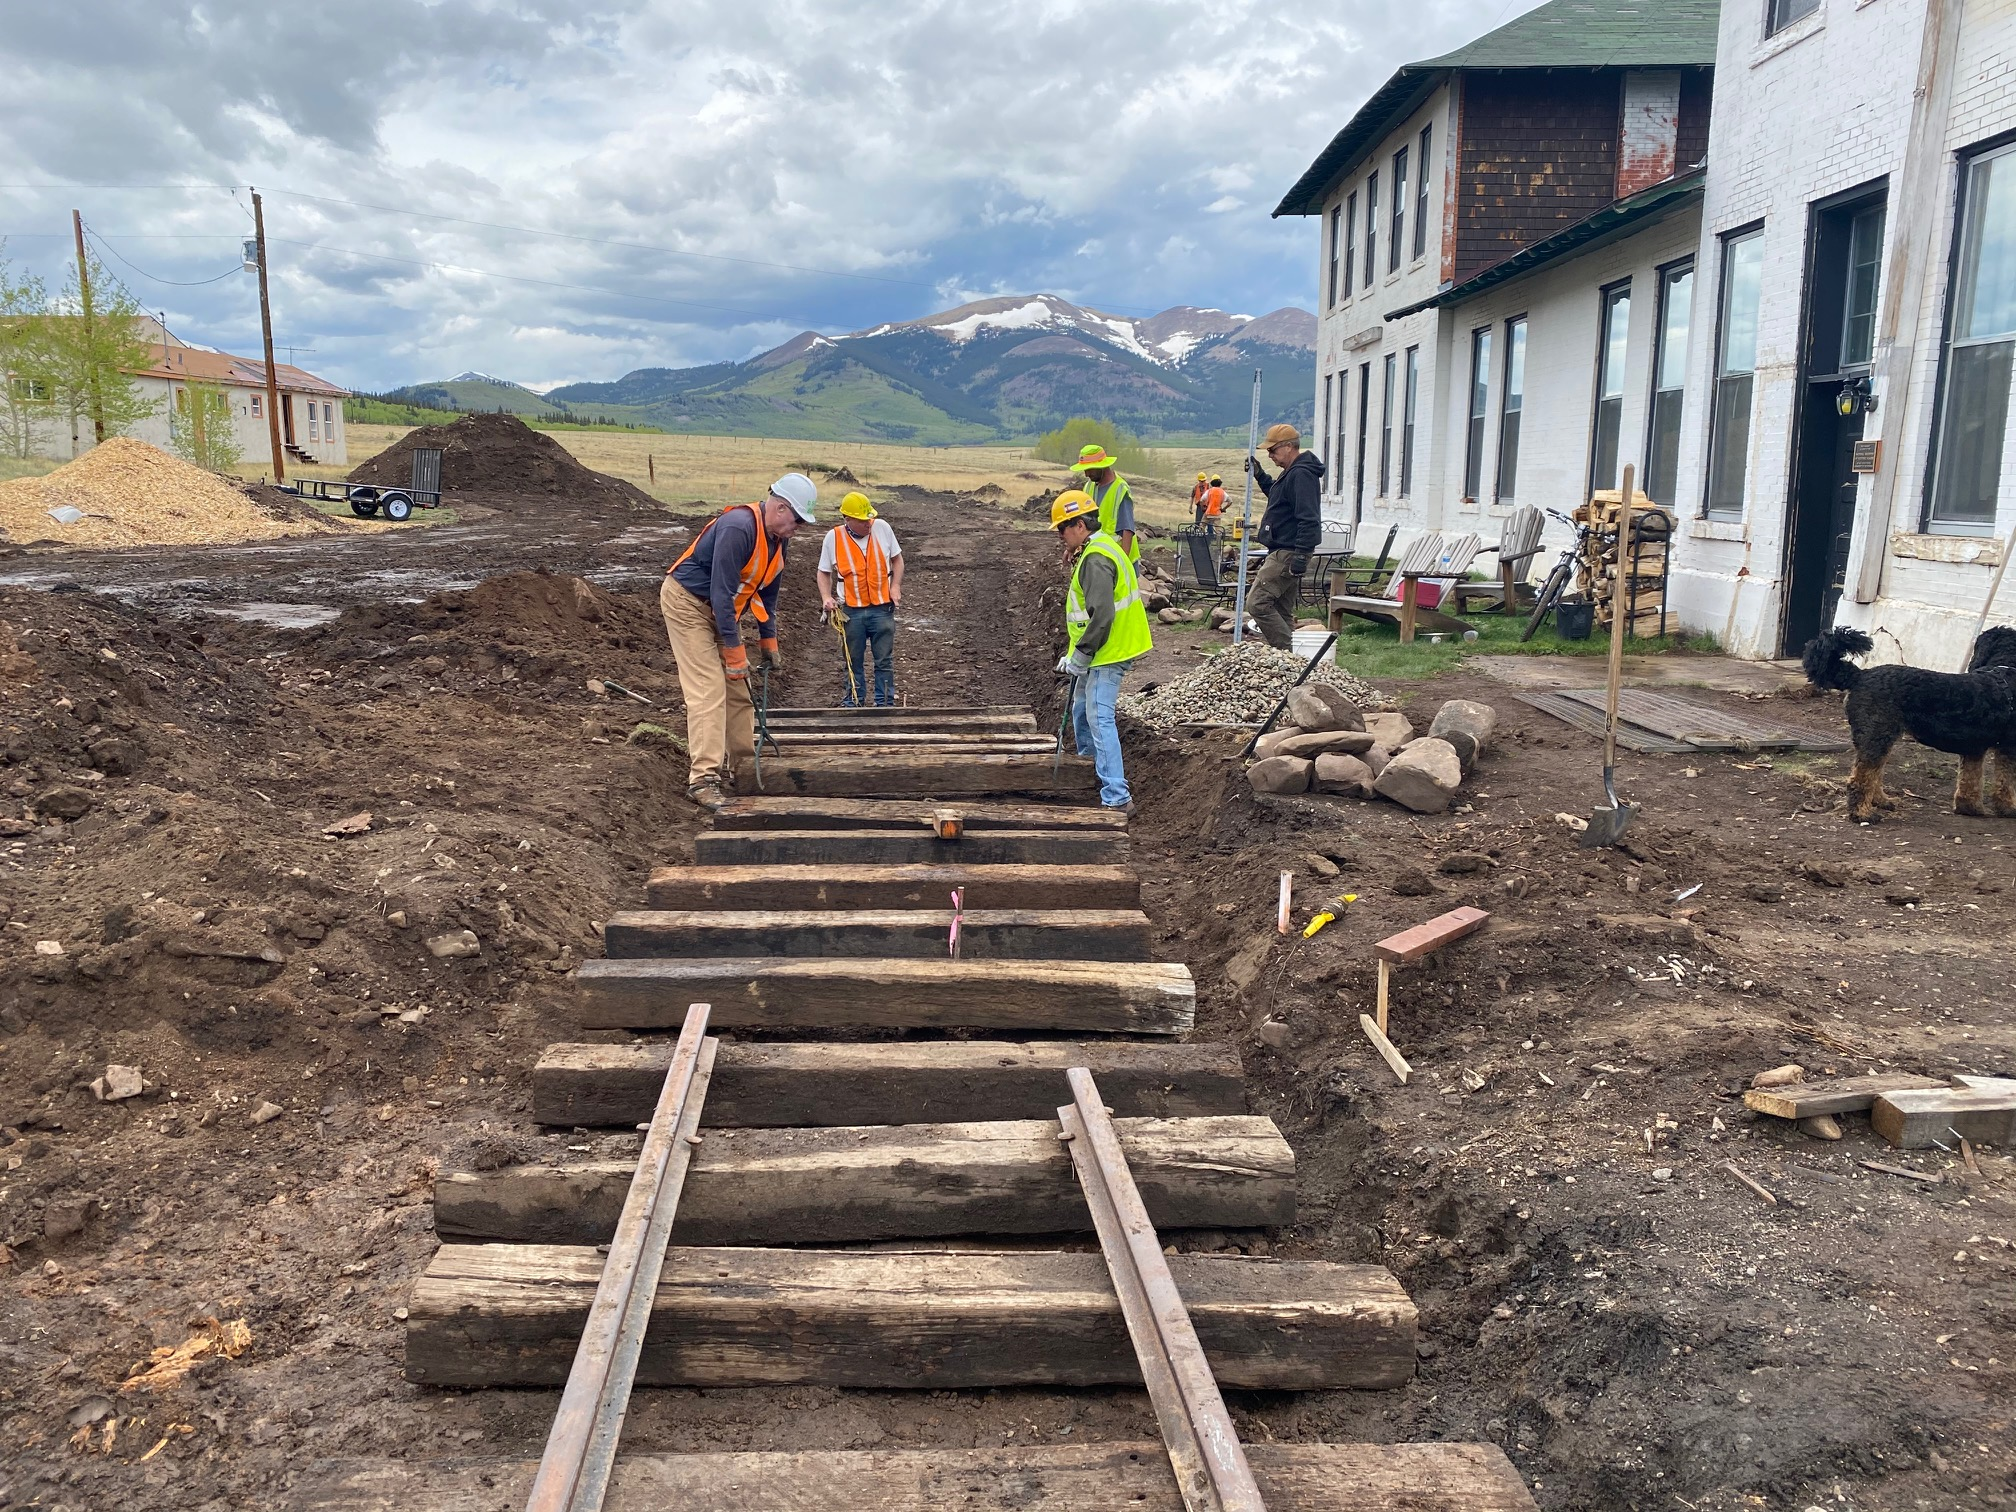 Track Laying in Front of the Hotel, June, Photo by Bob Schoppe